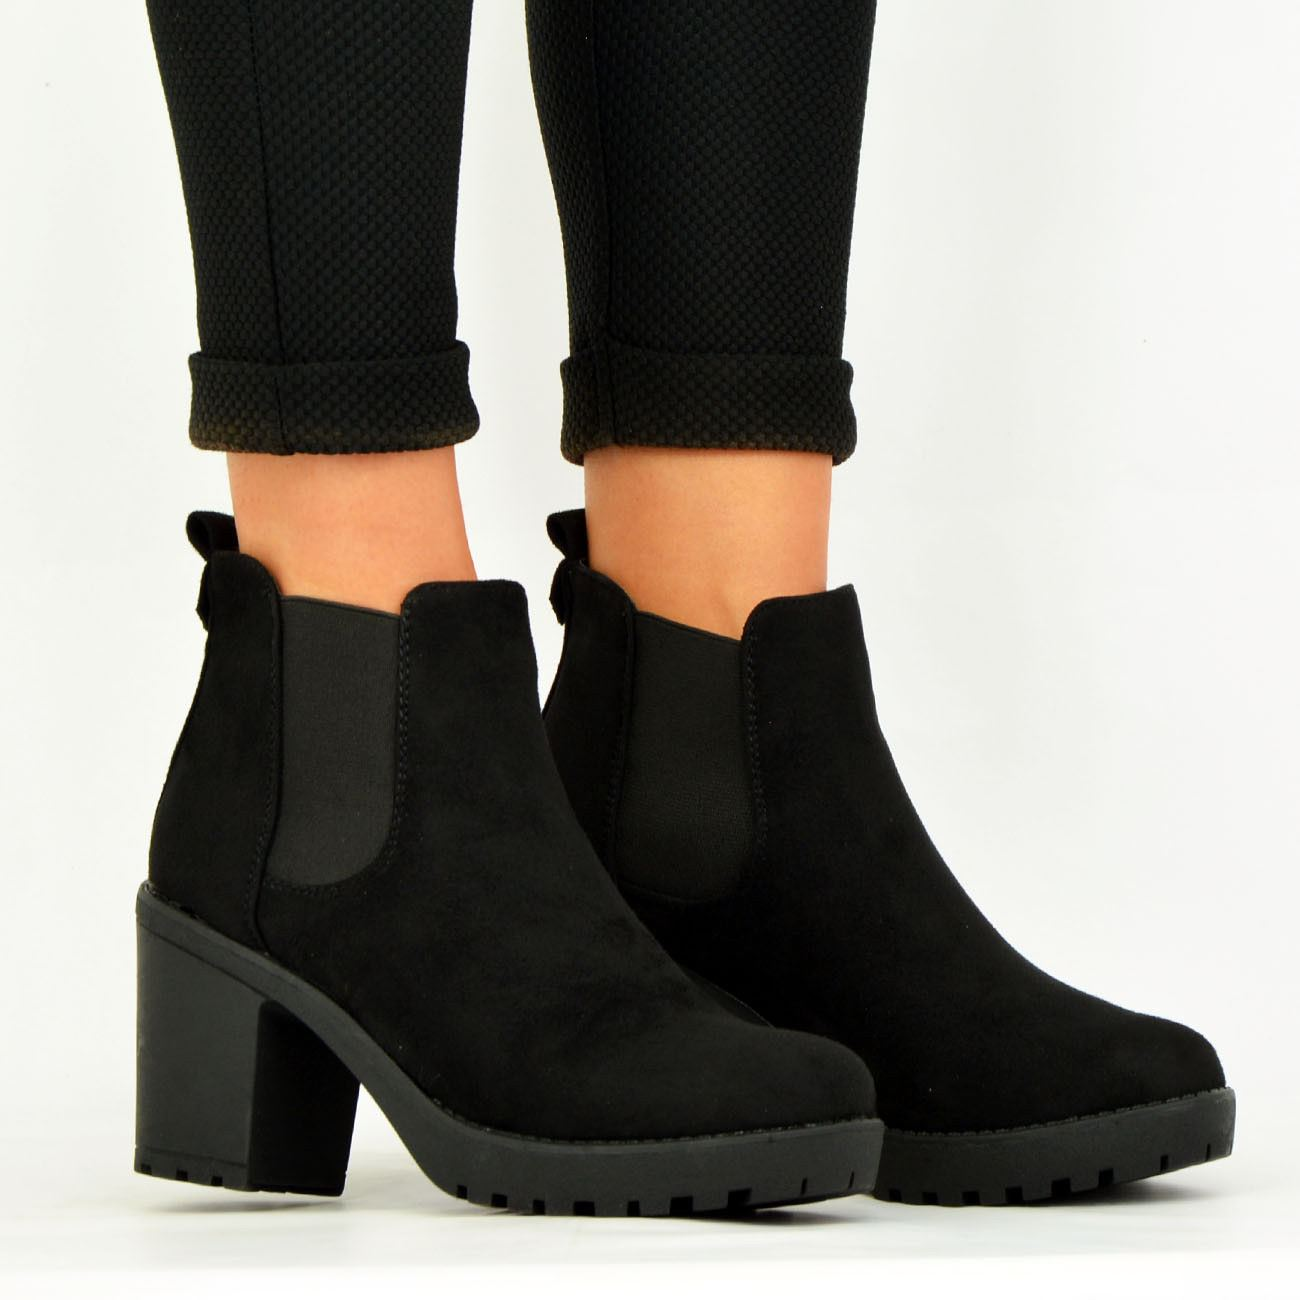 LADIES-WOMENS-ANKLE-CHELSEA-BOOTS-CHUNKY-BLOCK-HEELS-PLATFORM-SHOES-SIZE-UK-3-8 thumbnail 11